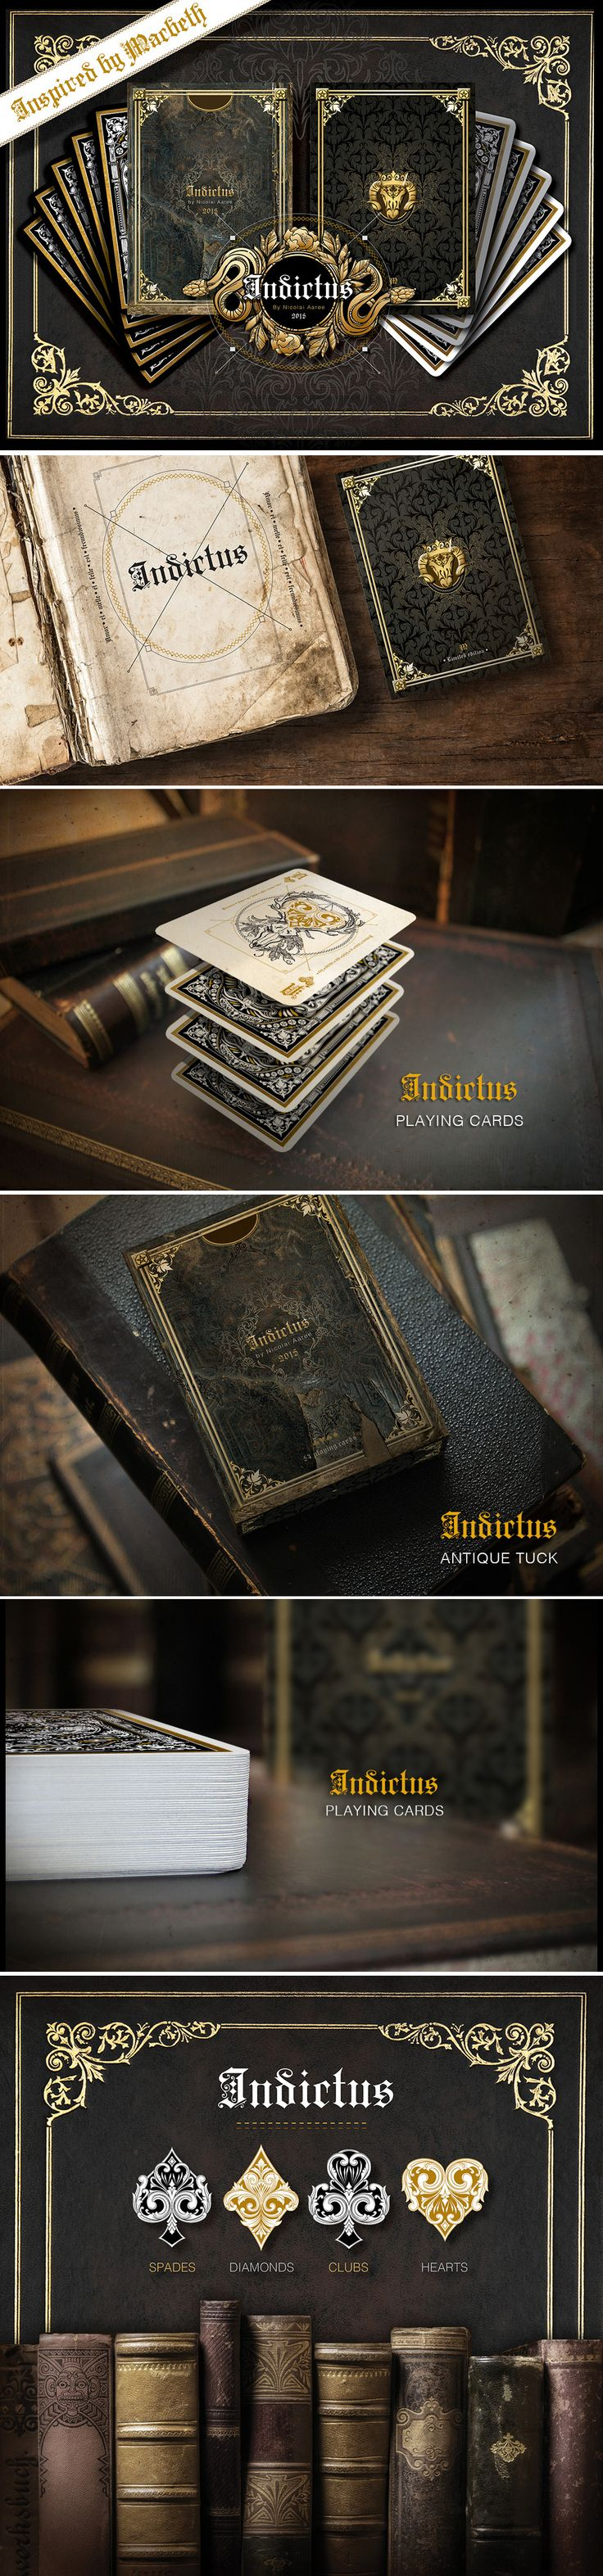 Indictus by Nicolai Aarøe - 2 embossed, gold foiled, metallic back inked, limited edition, deluxe decks of dark philosophy, and mysticism. Inspired by the Macbeth. Learn more: https://www.kickstarter.com/projects/nicolaiaaroe/indictus-playing-cards